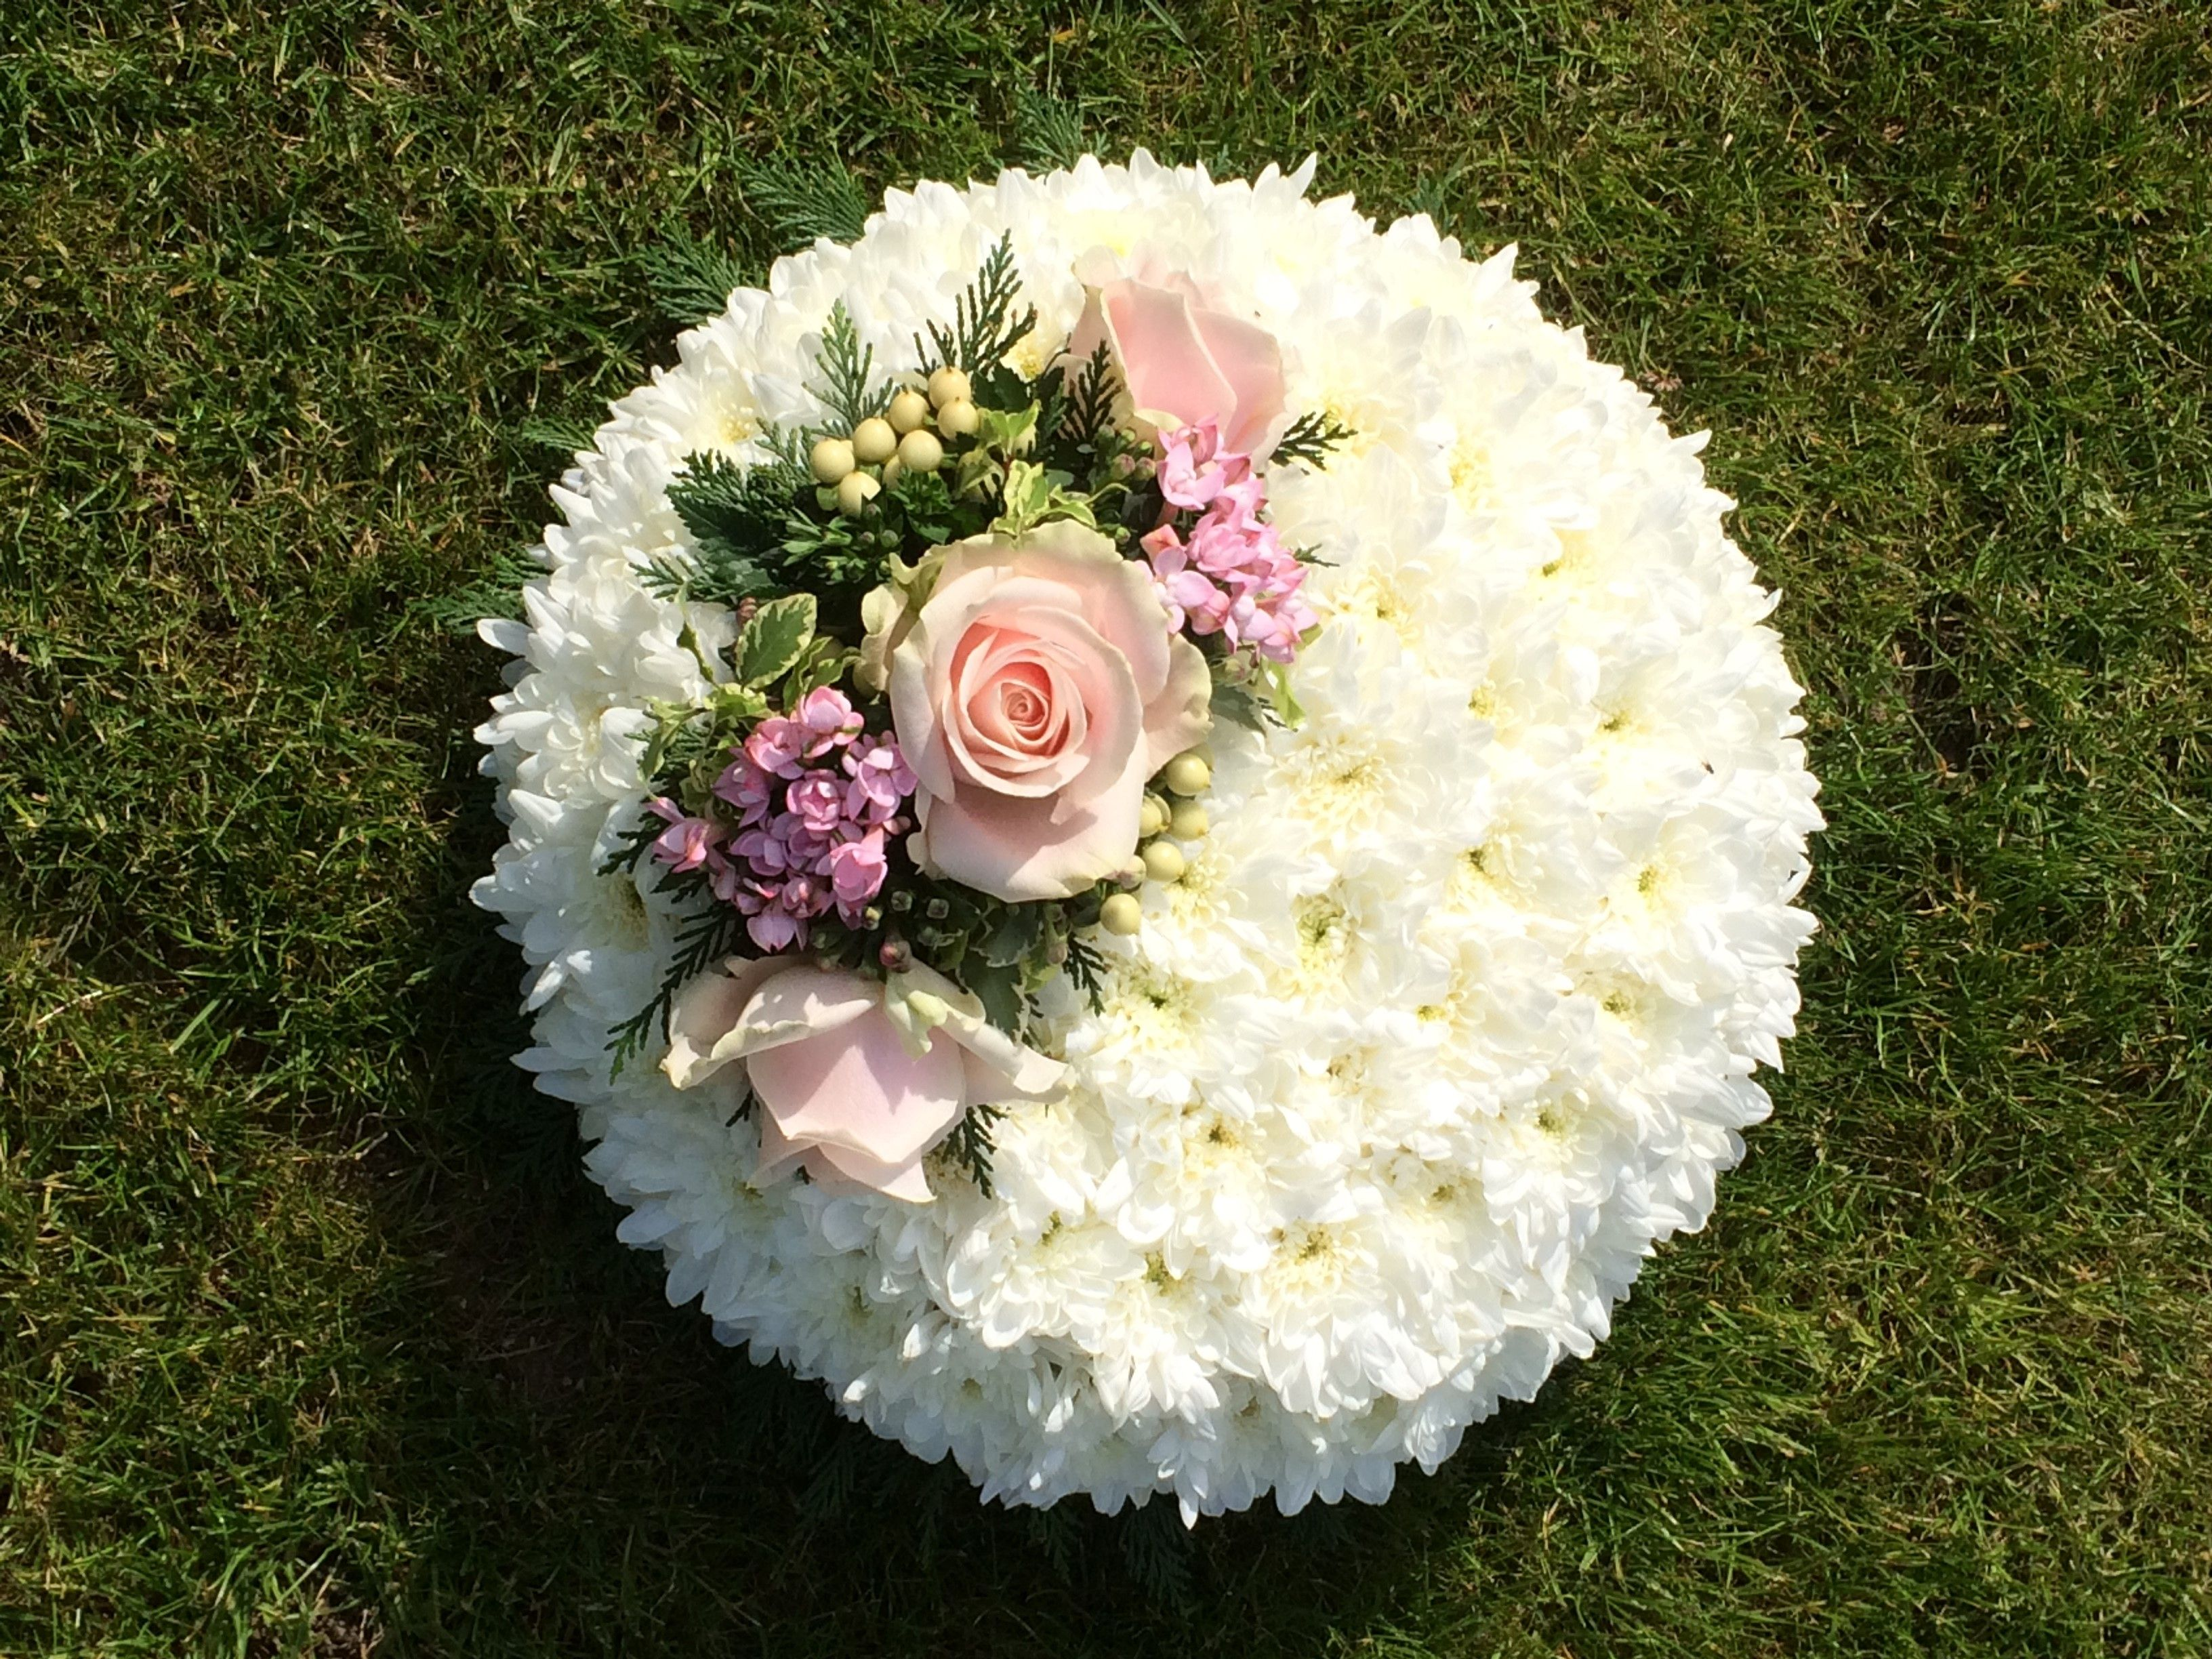 275 best sympathy flowers images on pinterest funeral flowers funeral posy pad white chrysanthemum based with floral spray created by willow house flowers dhlflorist Choice Image